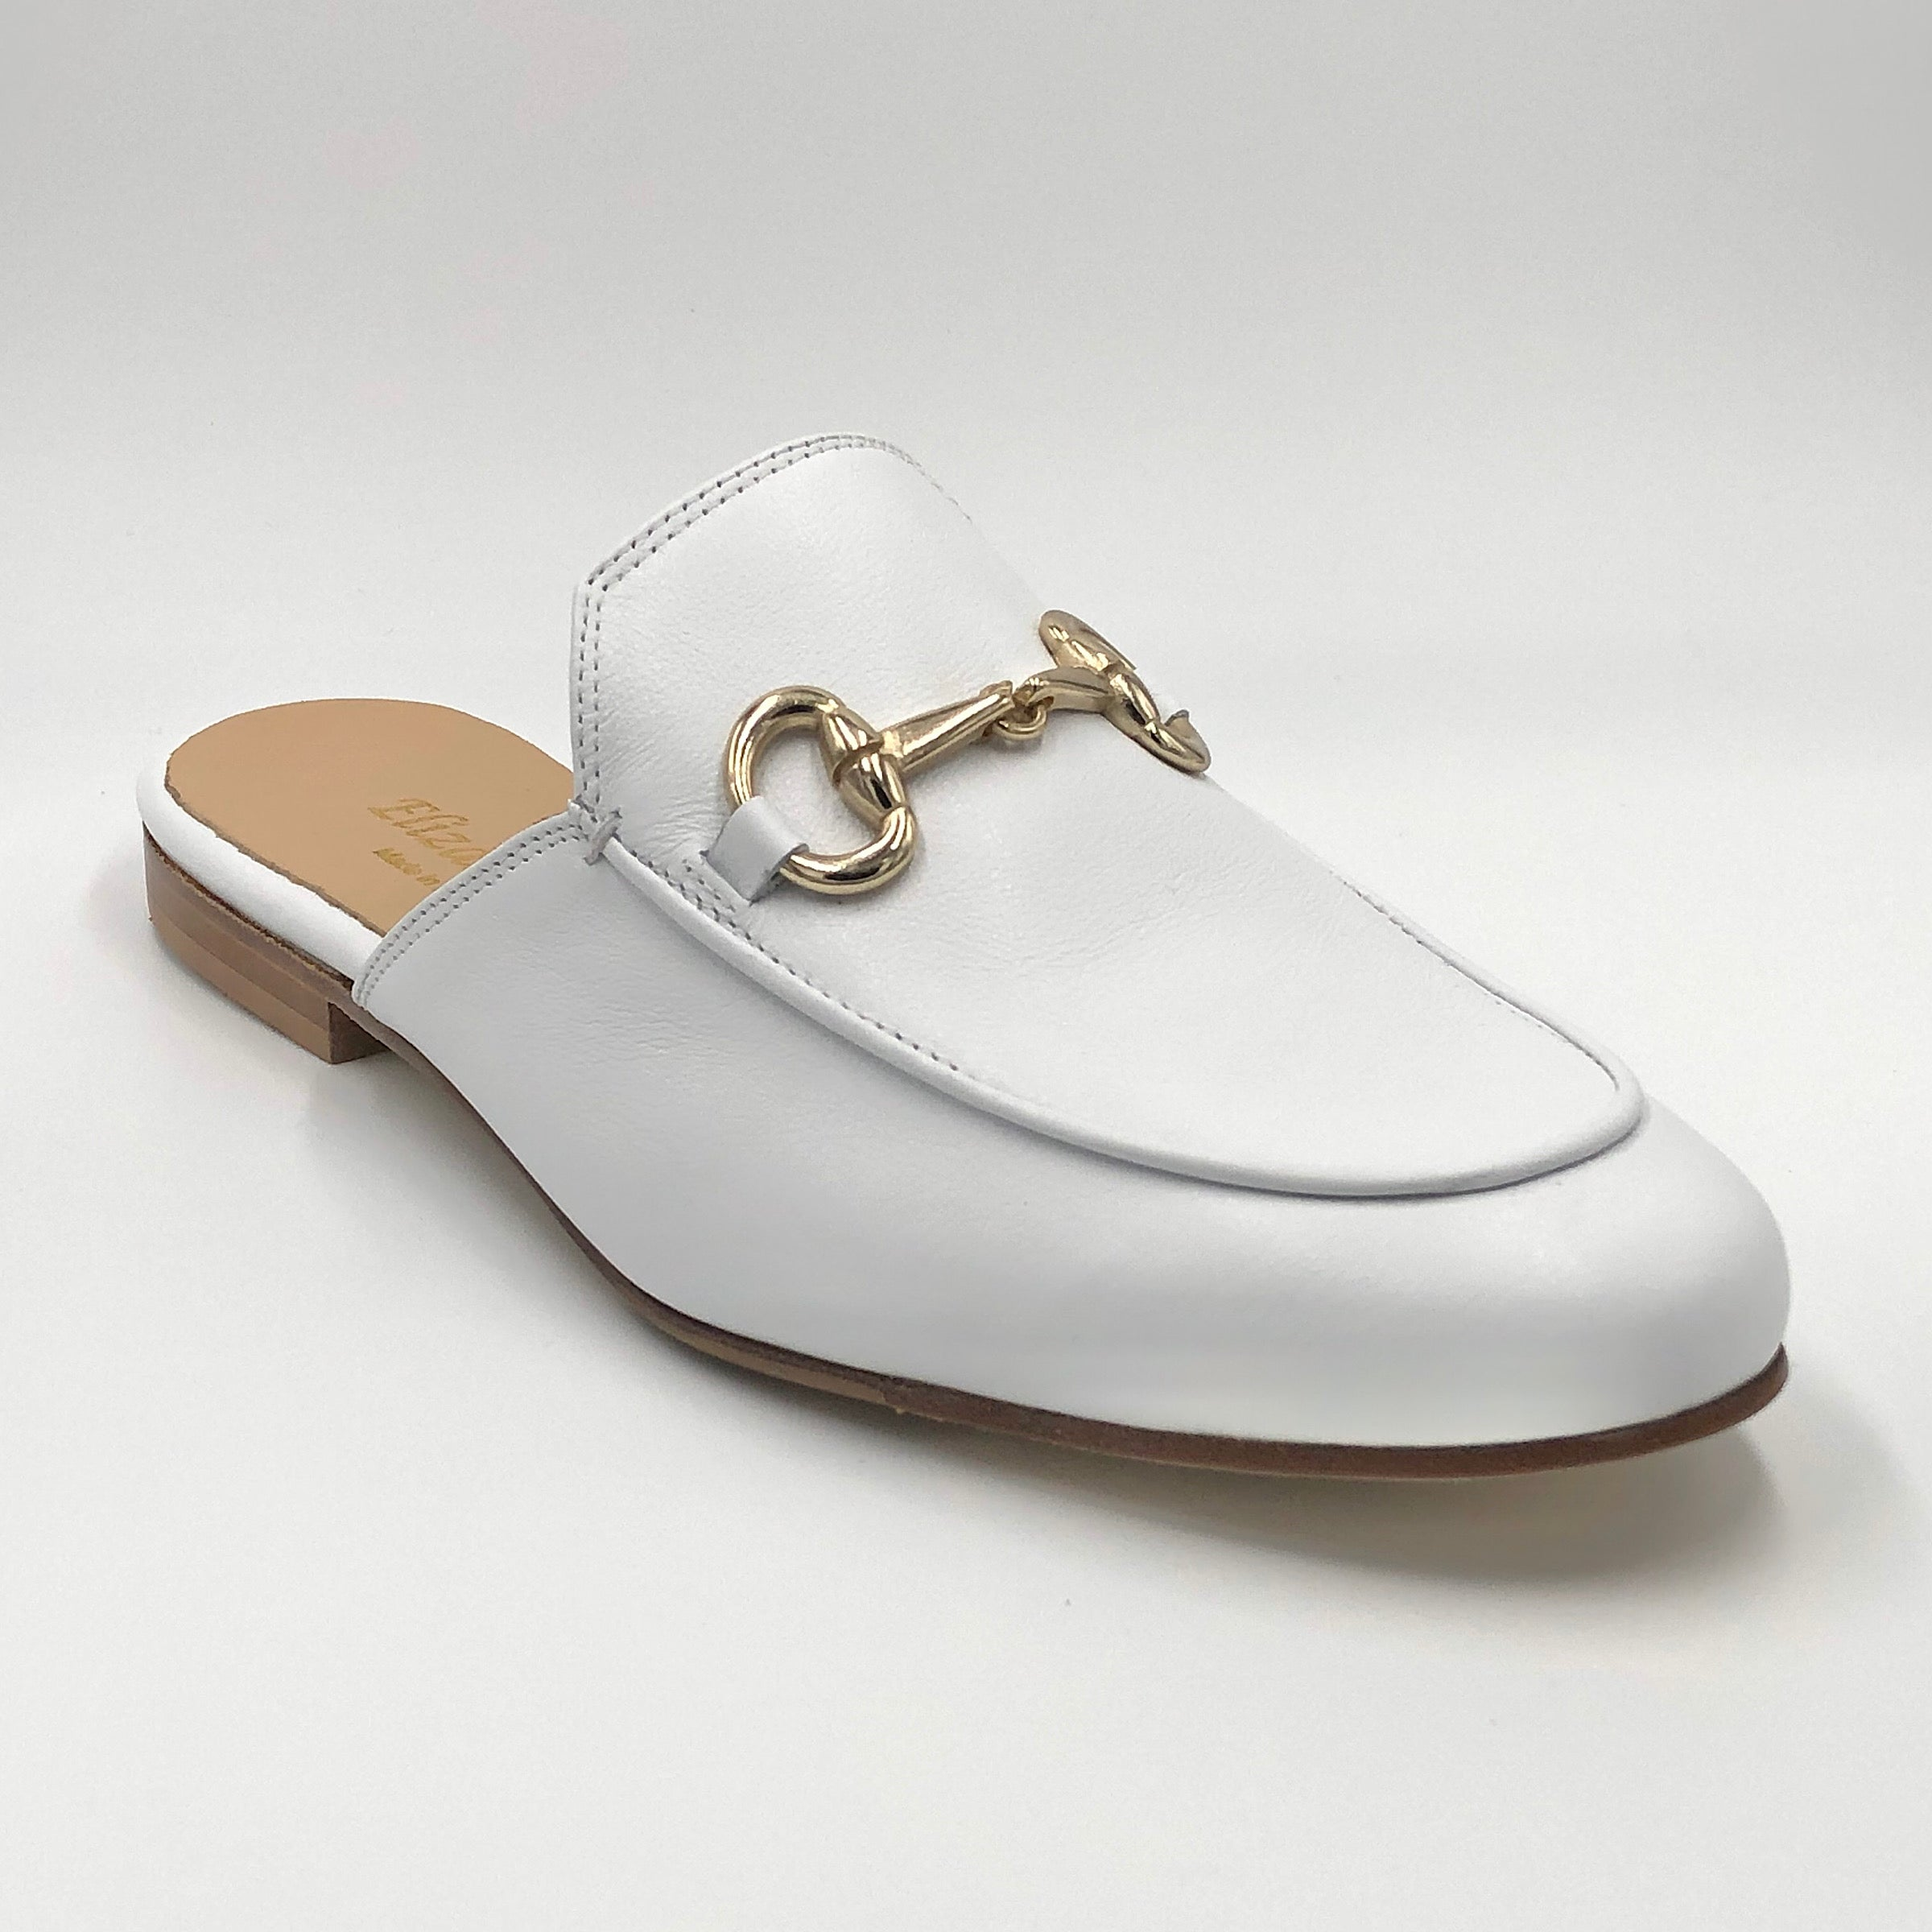 Bitmule - The Loafer Mule with Bit in White